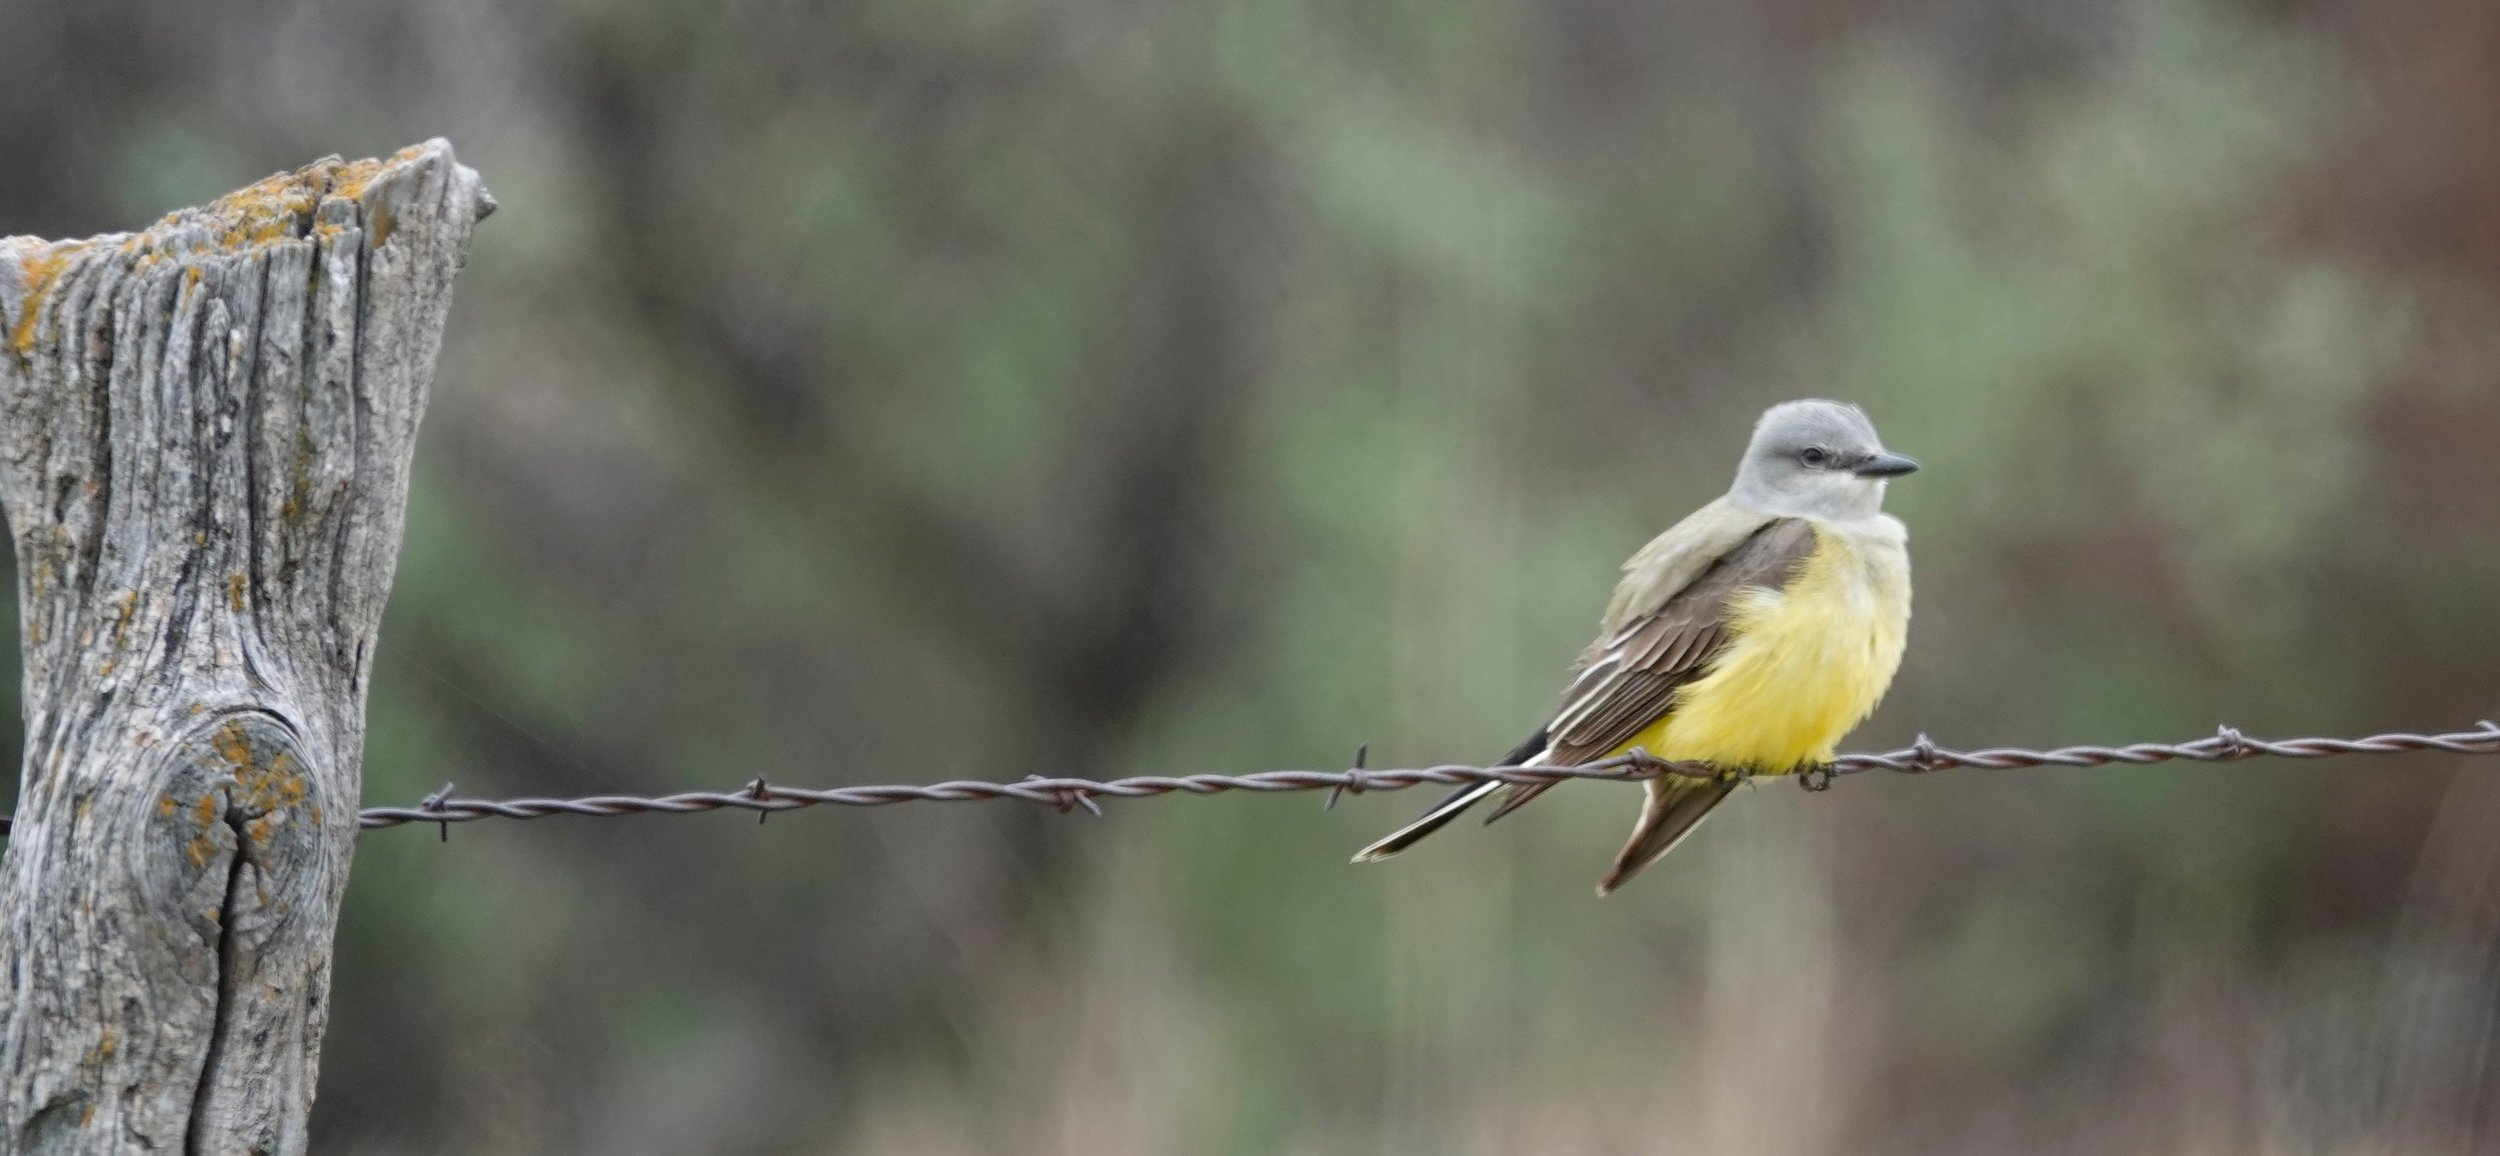 I canoed the Missouri River. My alarm clocks were the Western Kingbirds. They had no snooze alarms to punch.